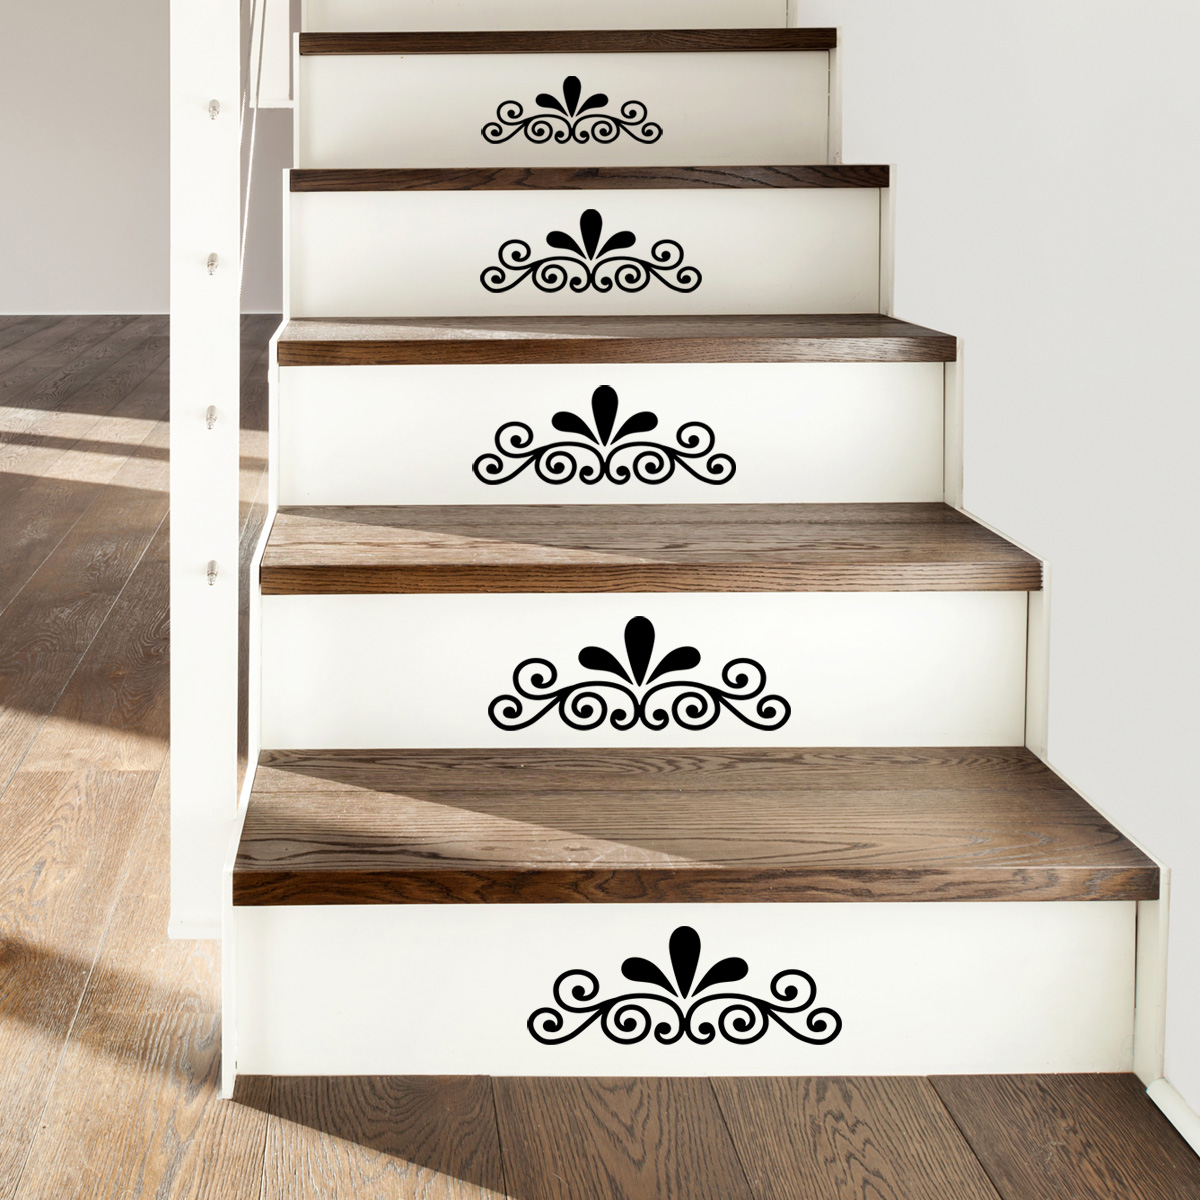 stickers muraux design sticker mural ornement pour escalier ambiance. Black Bedroom Furniture Sets. Home Design Ideas